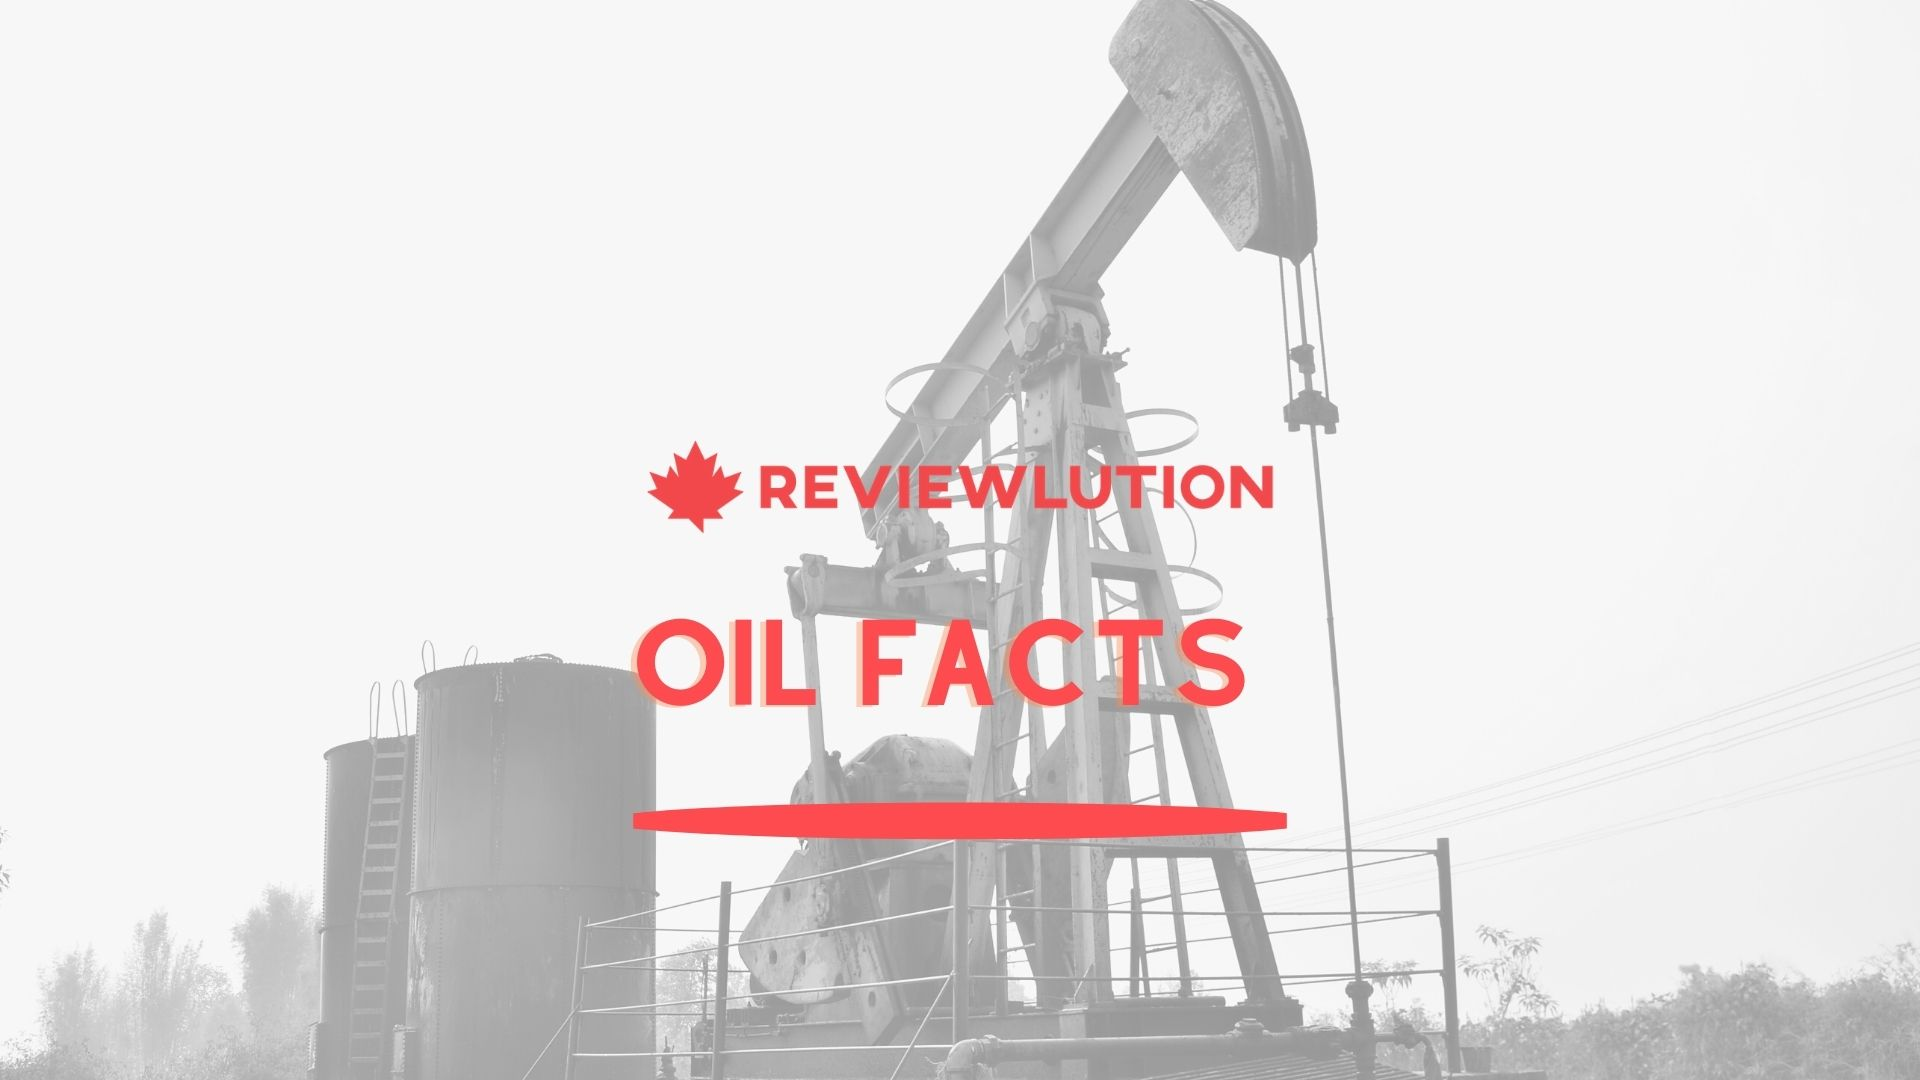 Incredible Oil Facts to Check out in 2021 [Infographic]